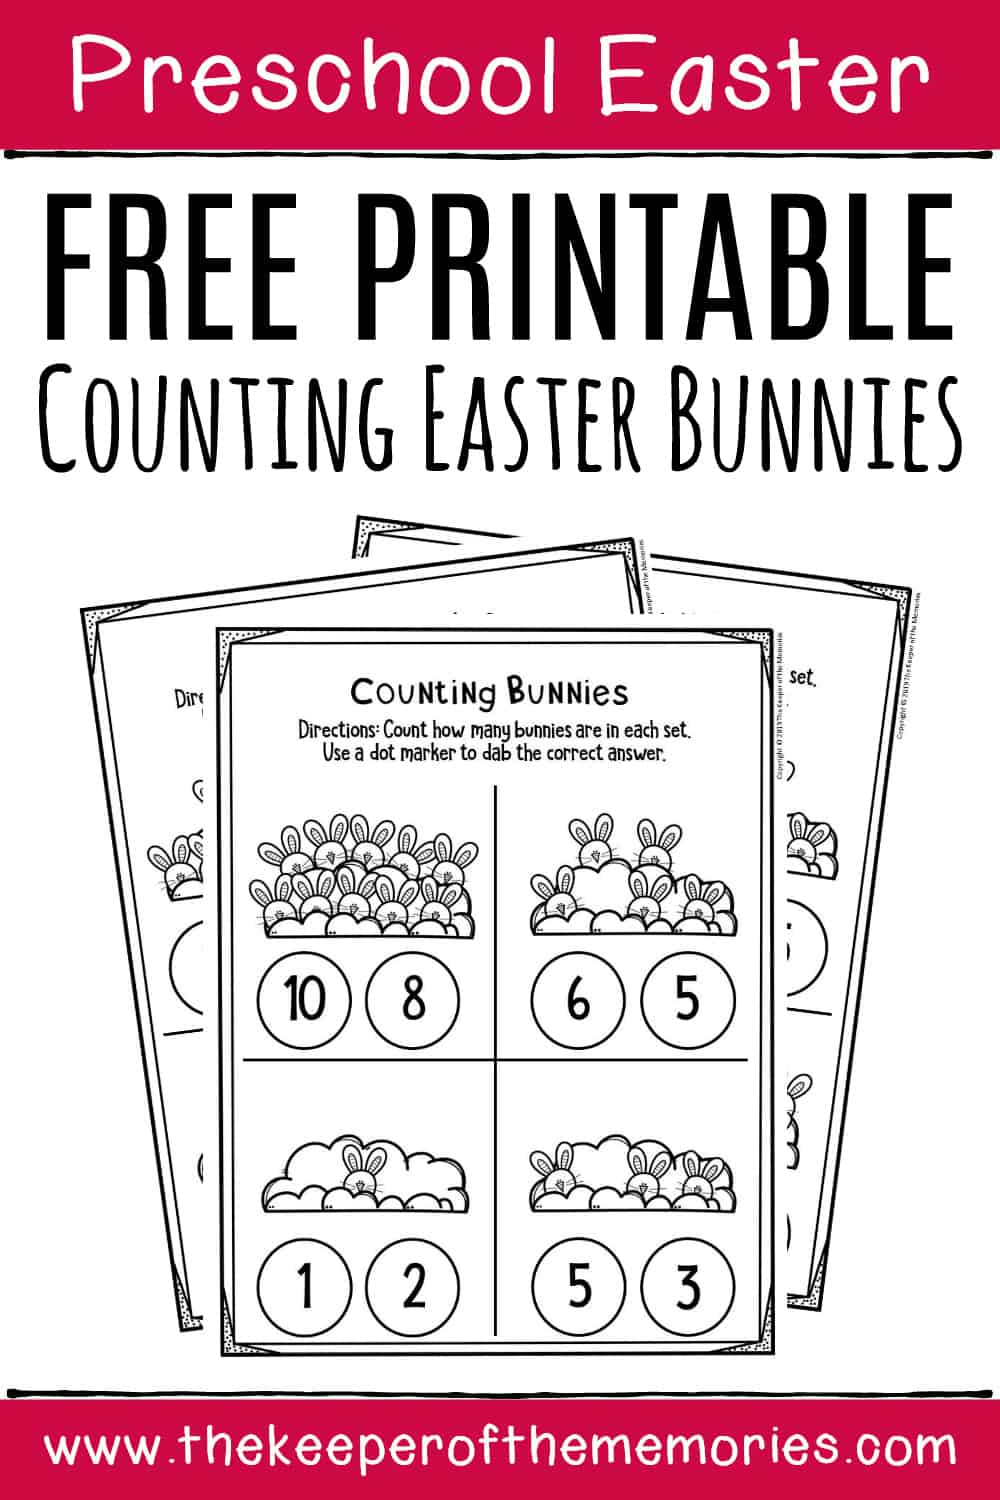 Counting Bunnies Free Printable Easter Activity Sheets